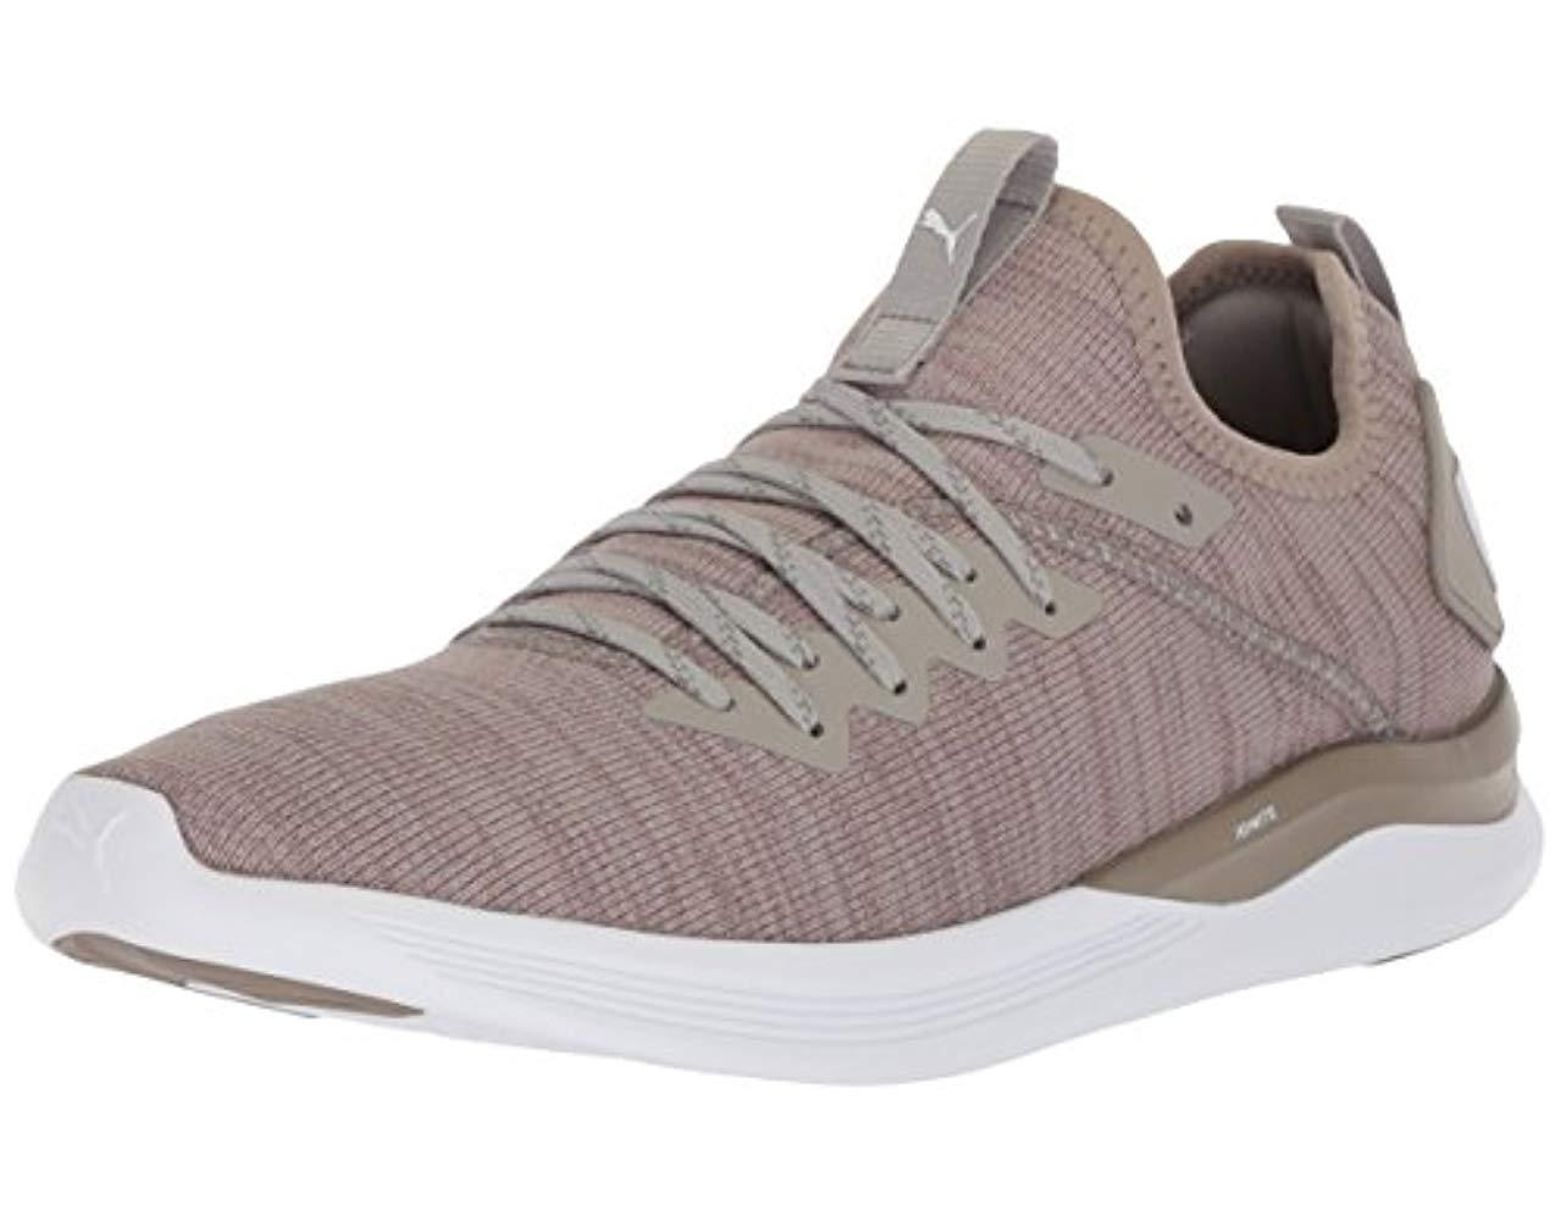 wholesale dealer a964b f027e Men's Ignite Flash Evoknit Sneaker